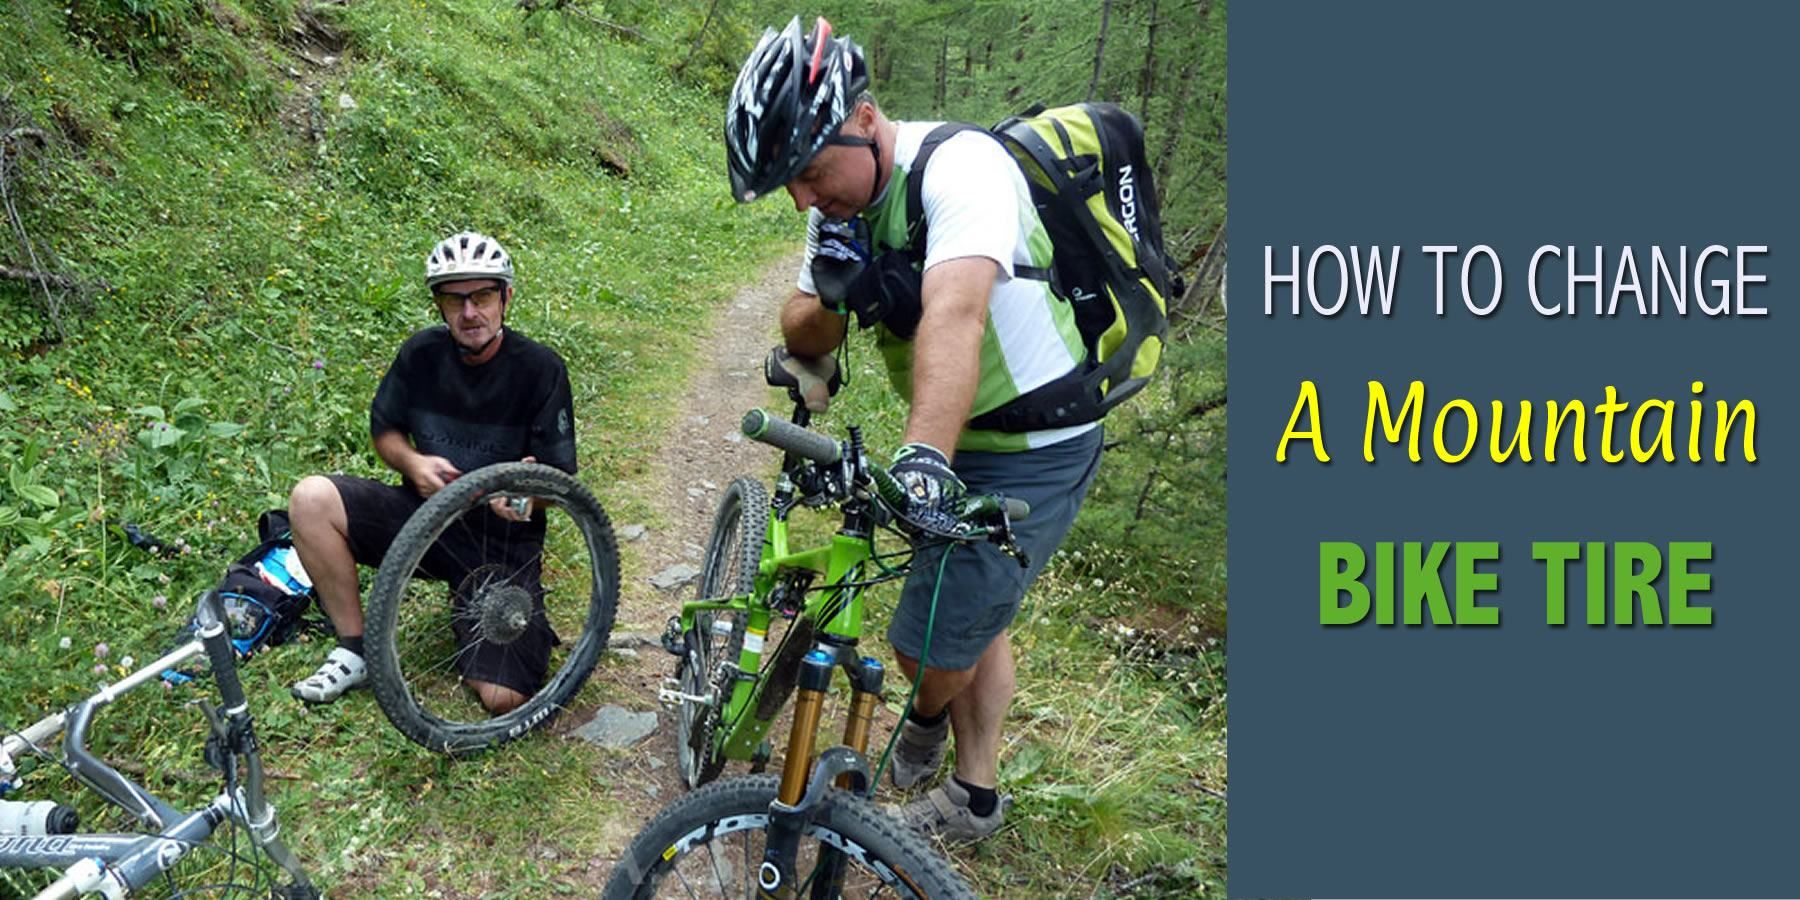 How To Change A Mountain Bike Tire Step By Step Guide By Bike